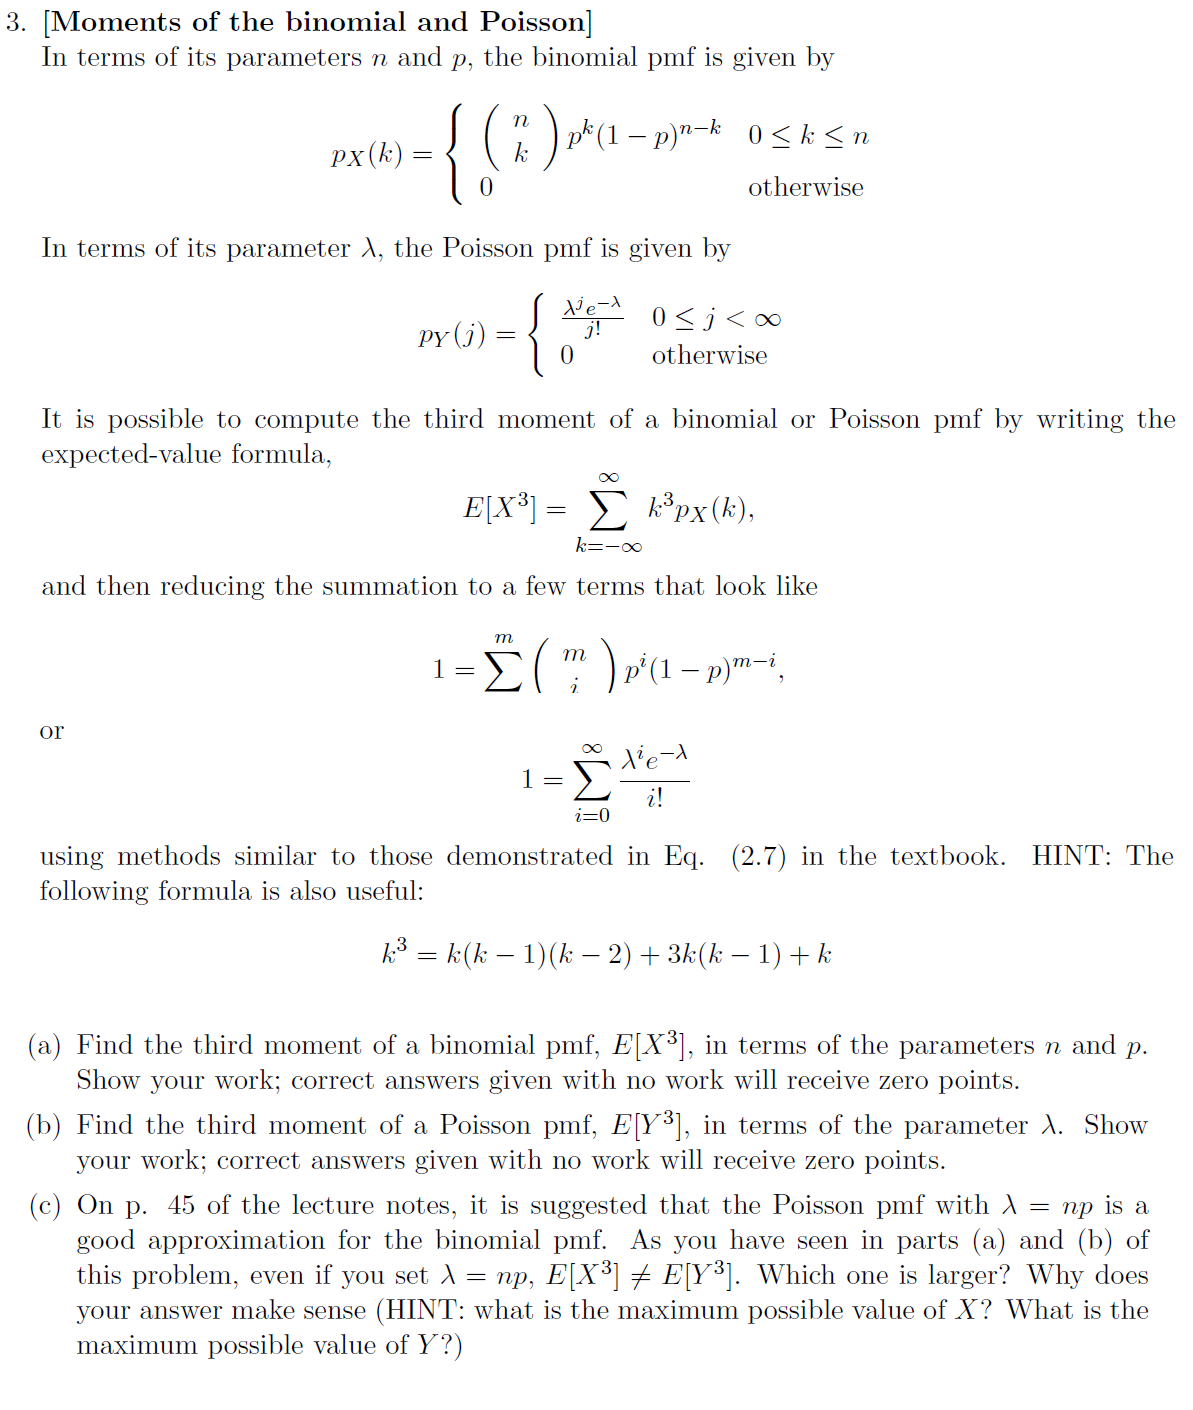 [Moments of the binomial and poisson] In terms of